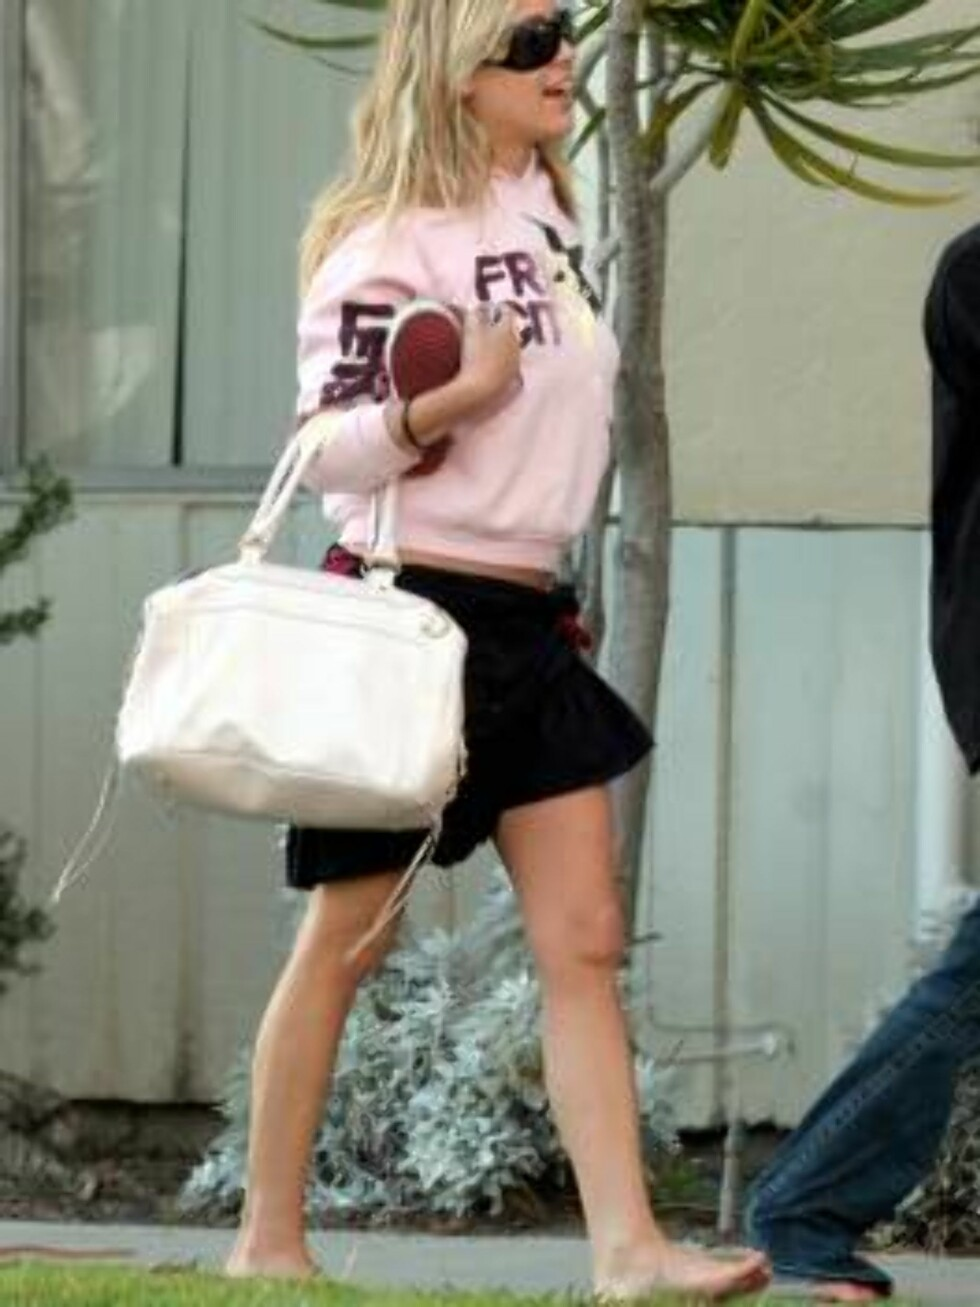 Nick Lachey's love interest sexy Laguna Beach star Kristin Cavaleri leaving a hotel in Hollywood barefoot. Dis she have lipo? March 19, 2006 X17agency EXCLUSIVE / ALL OVER PRESS Foto: All Over Press